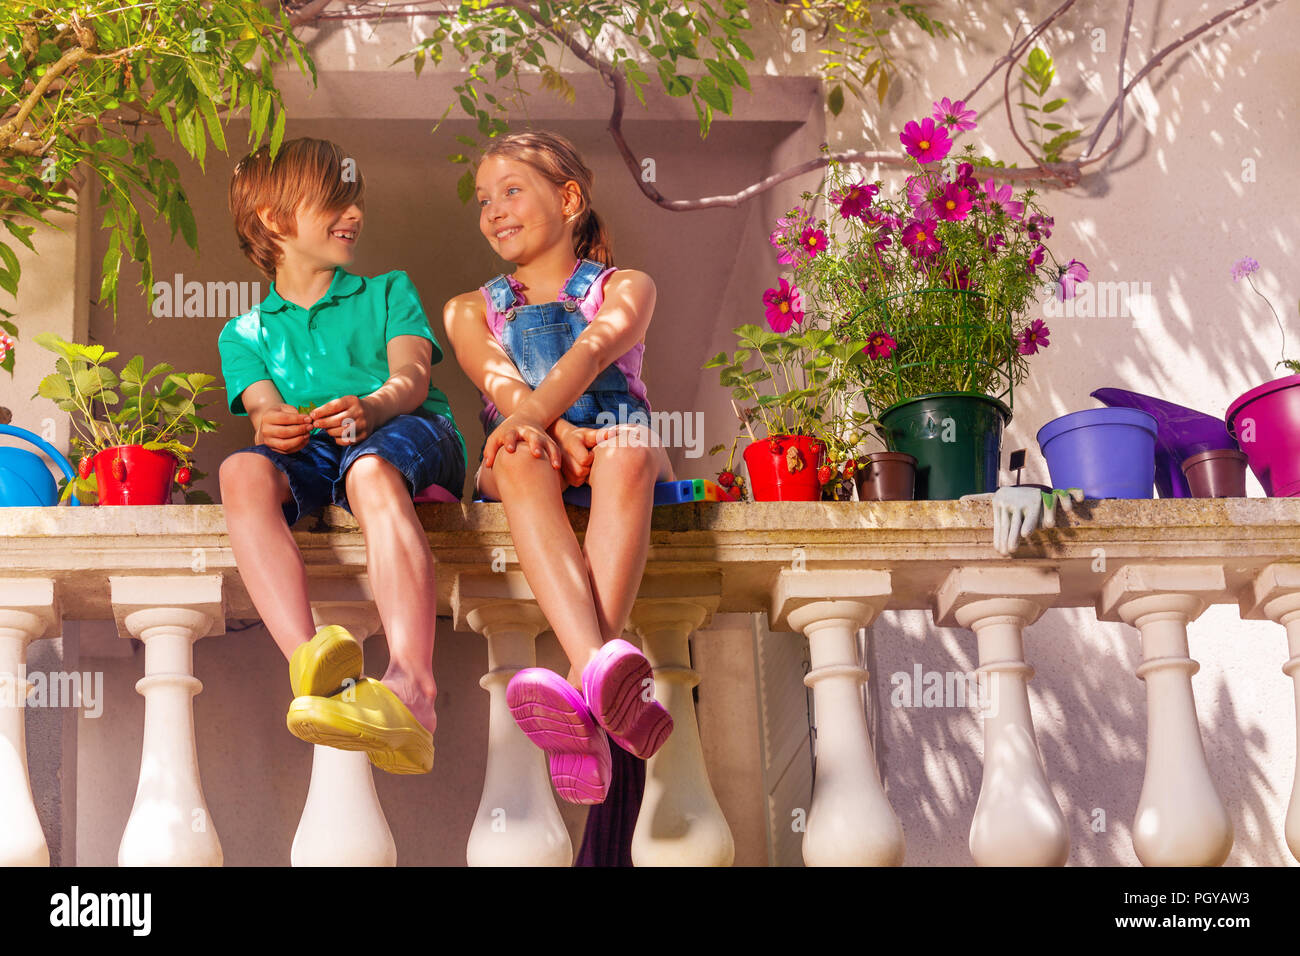 Low-angle shot of happy preteen boy and girl sitting on terrace balustrade among potted flowers - Stock Image